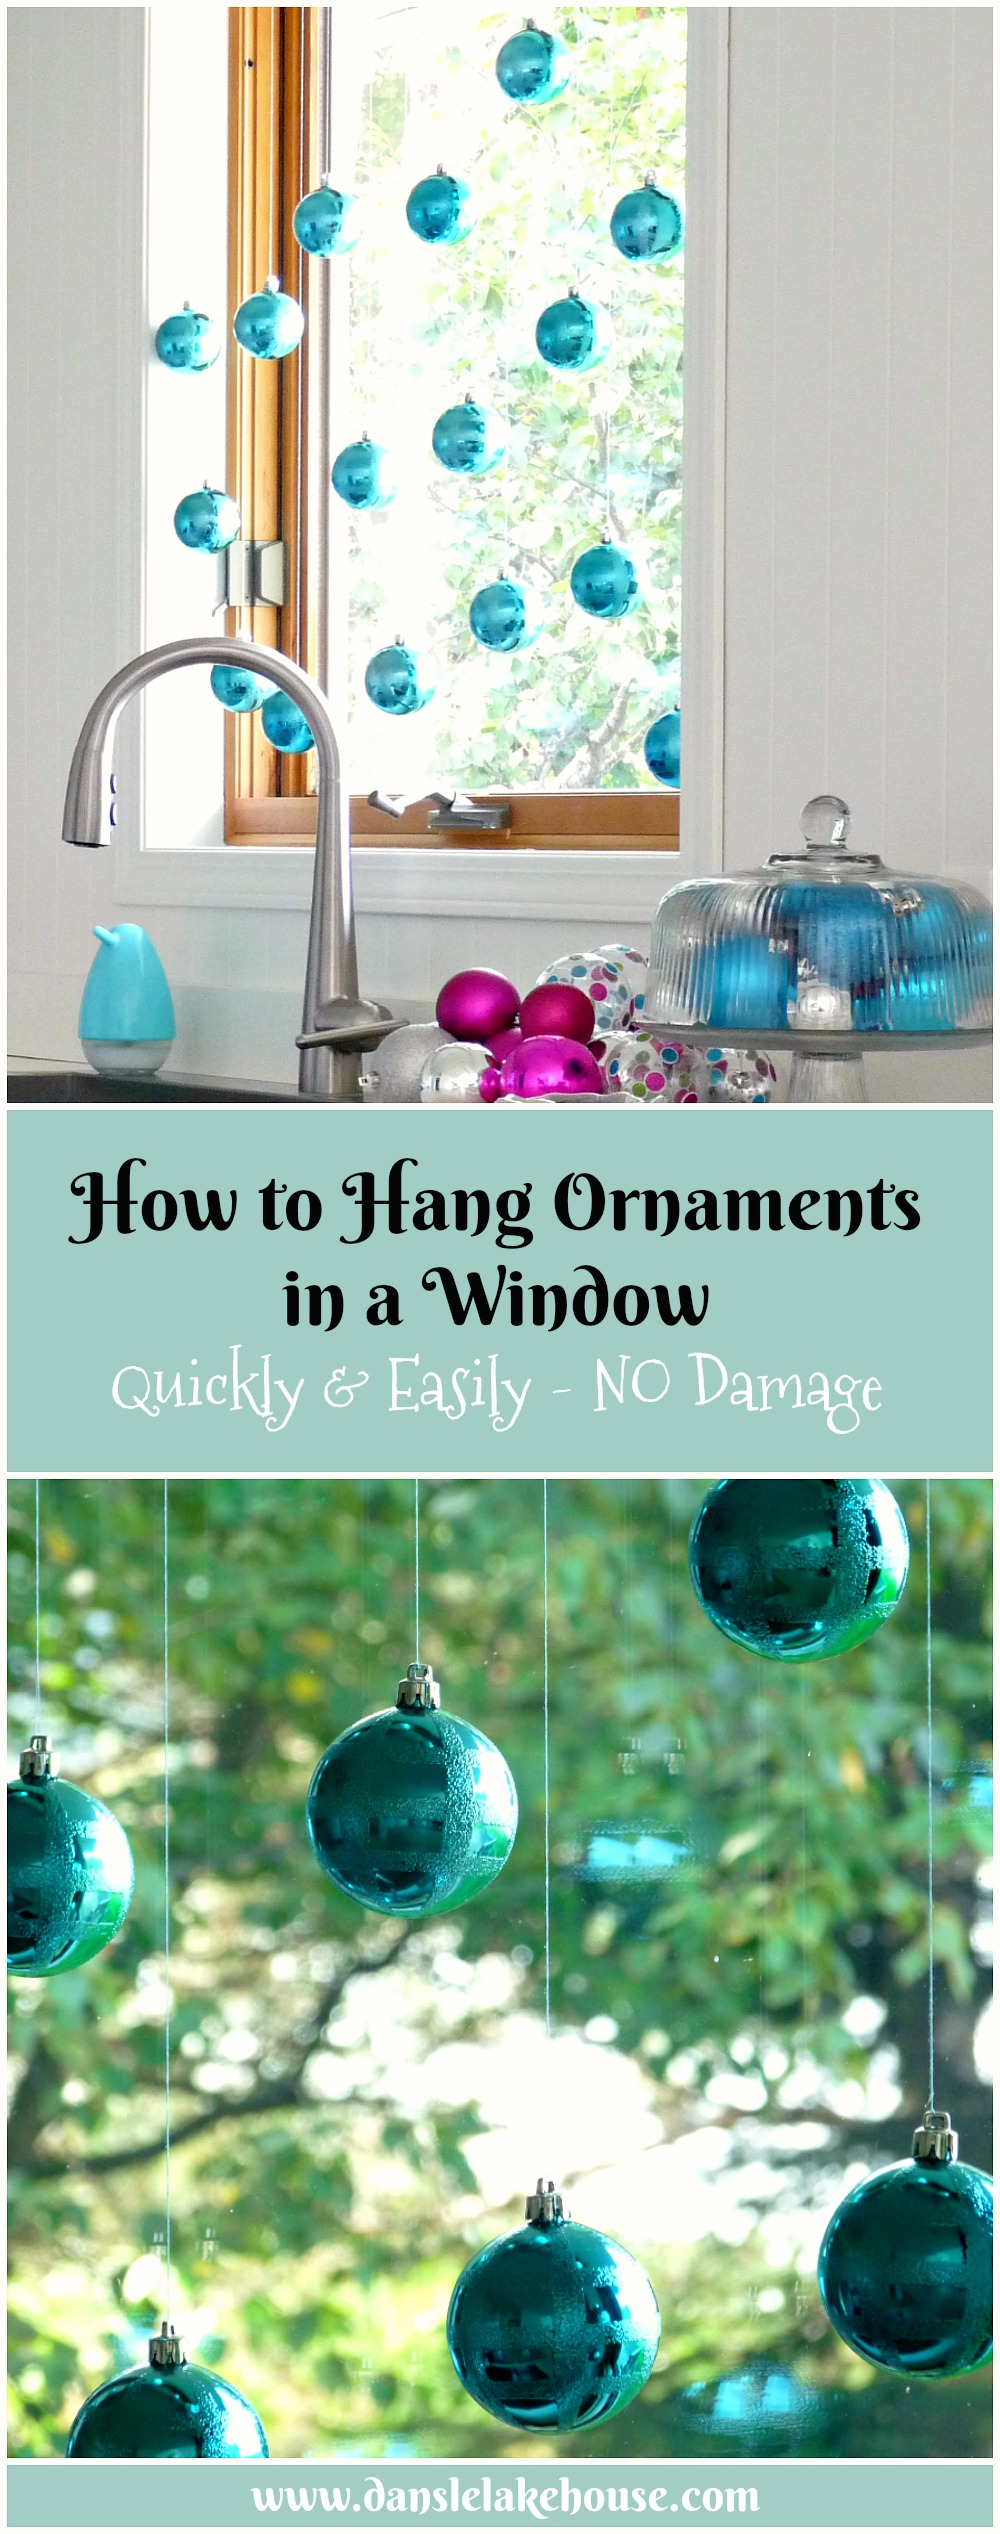 How to Hang Ornaments in a Window